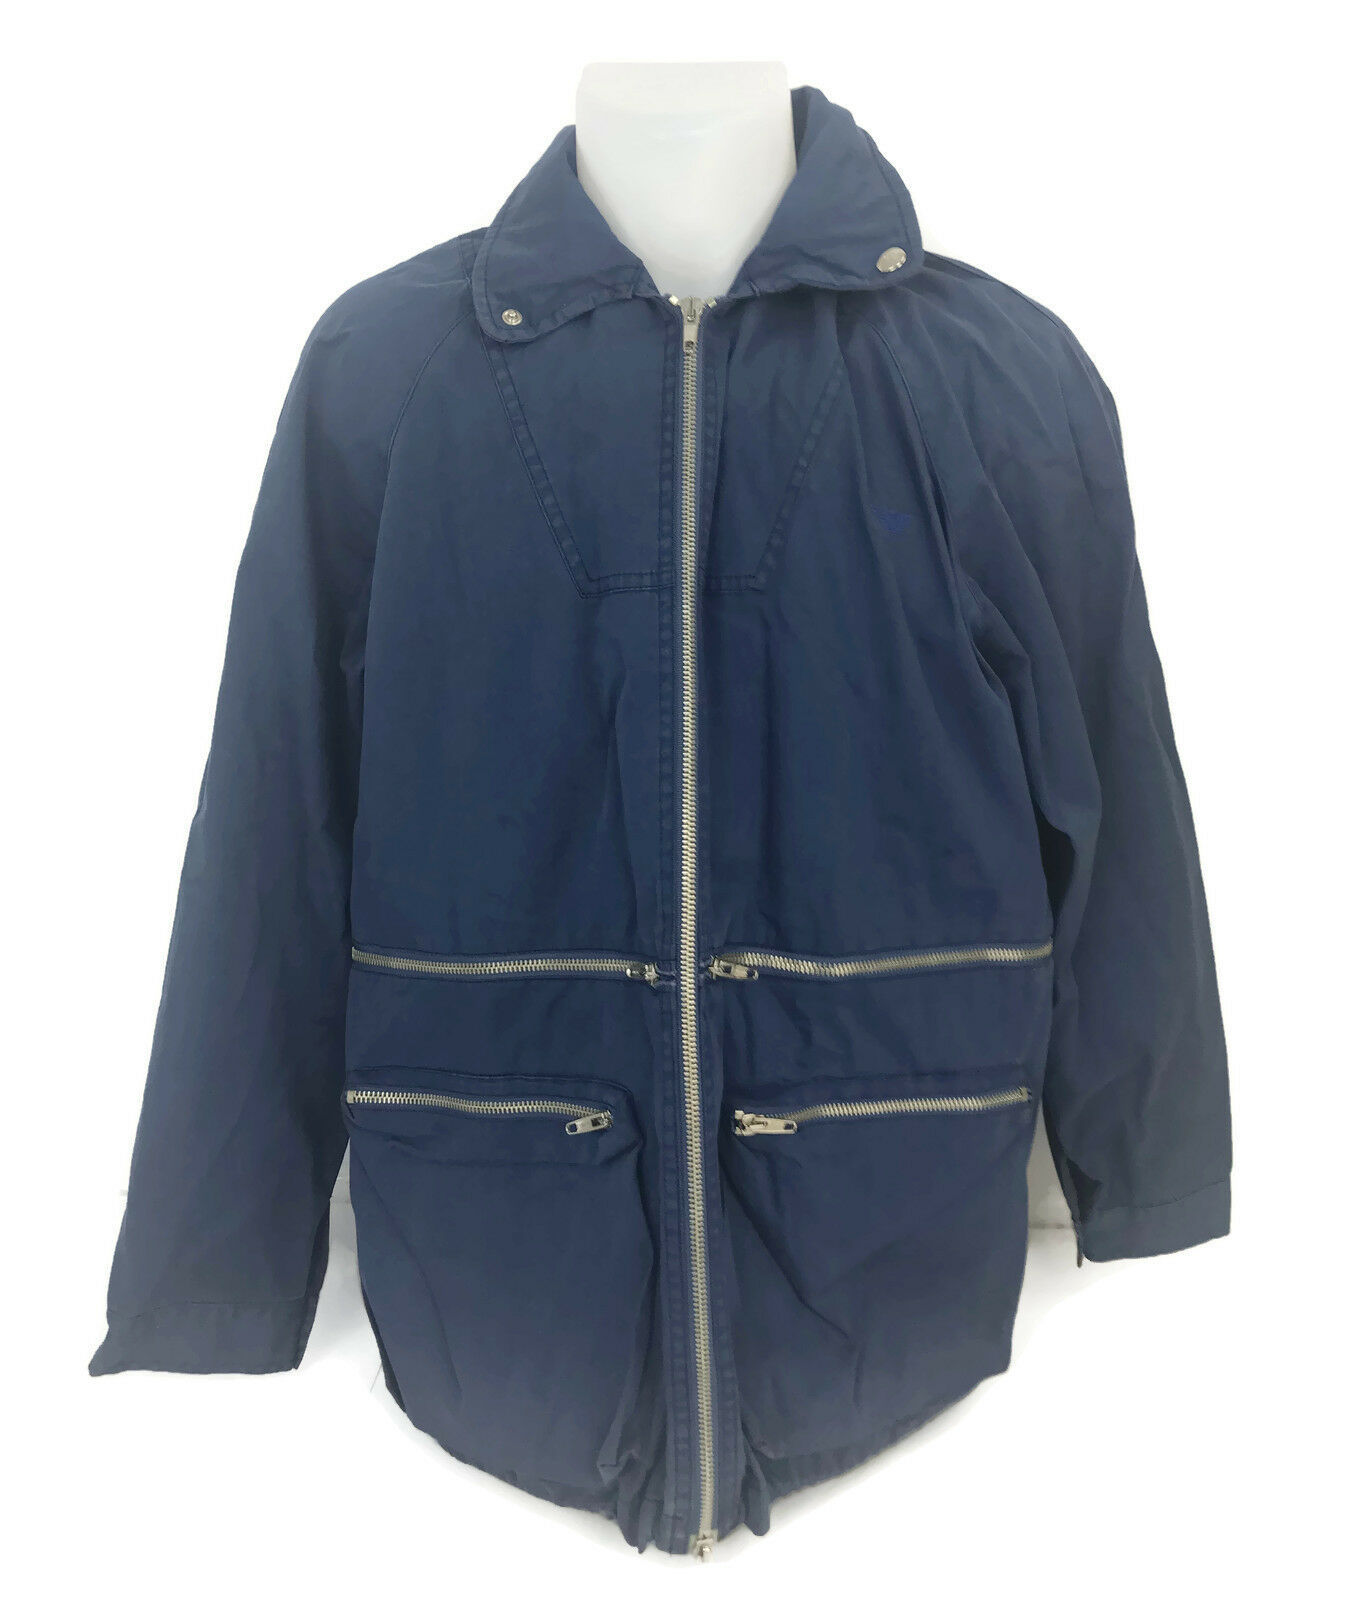 Primary image for Giorgio Armani Junior Boys Medium Blue Jacket Roll Down Hood Italy Size 14 Y 42